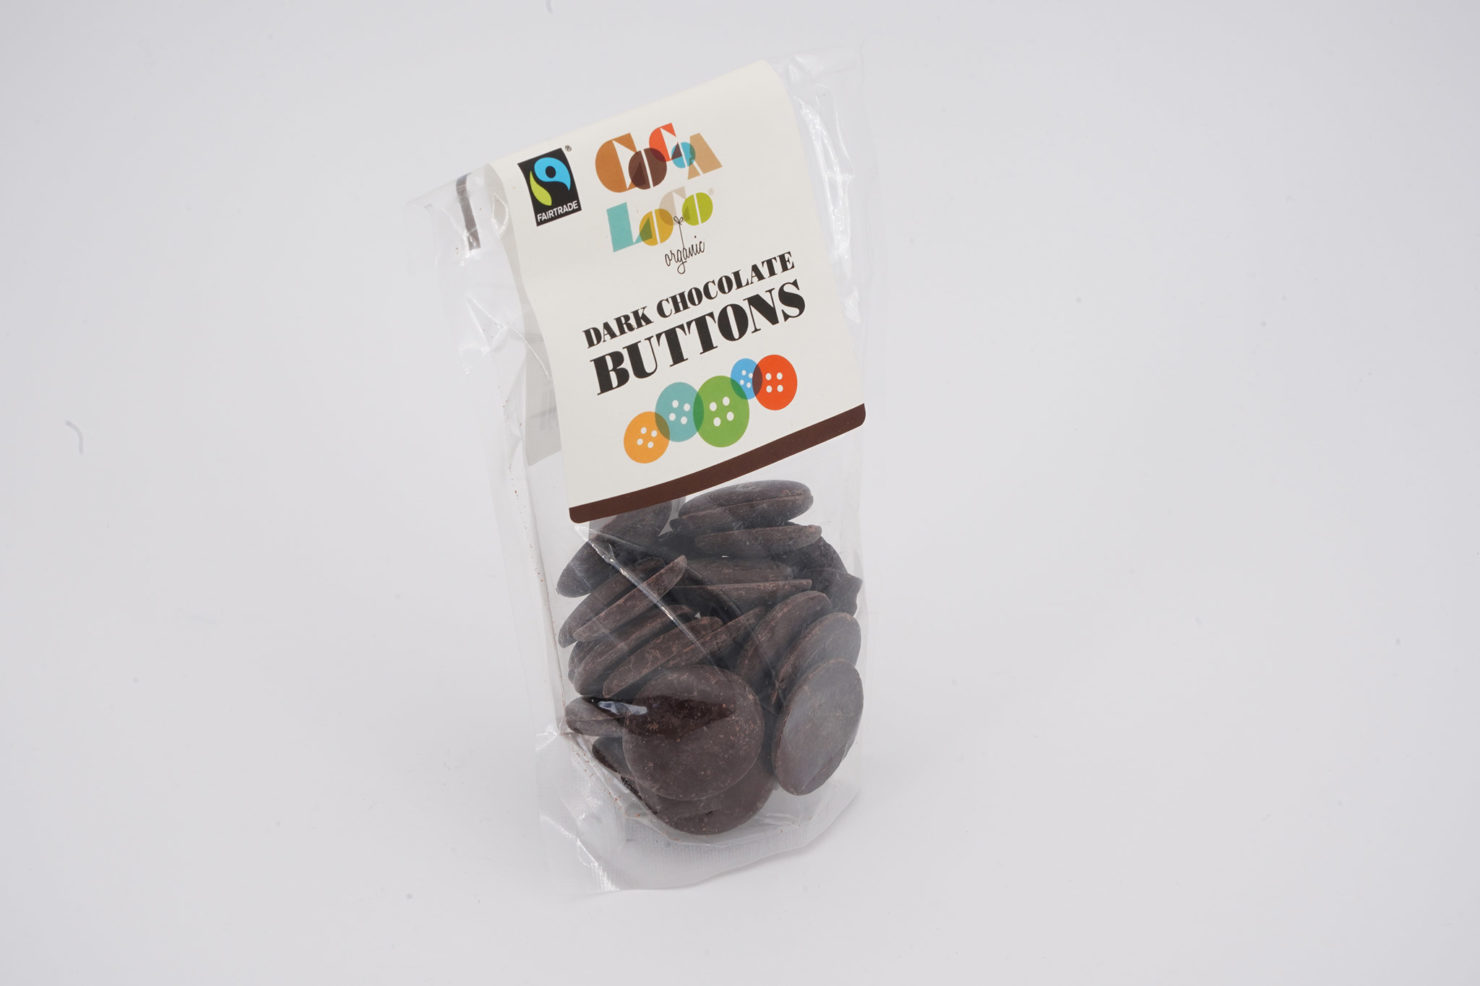 CHOCOLATE BUTTONS 73% DARK 100 GR COCOALOCO